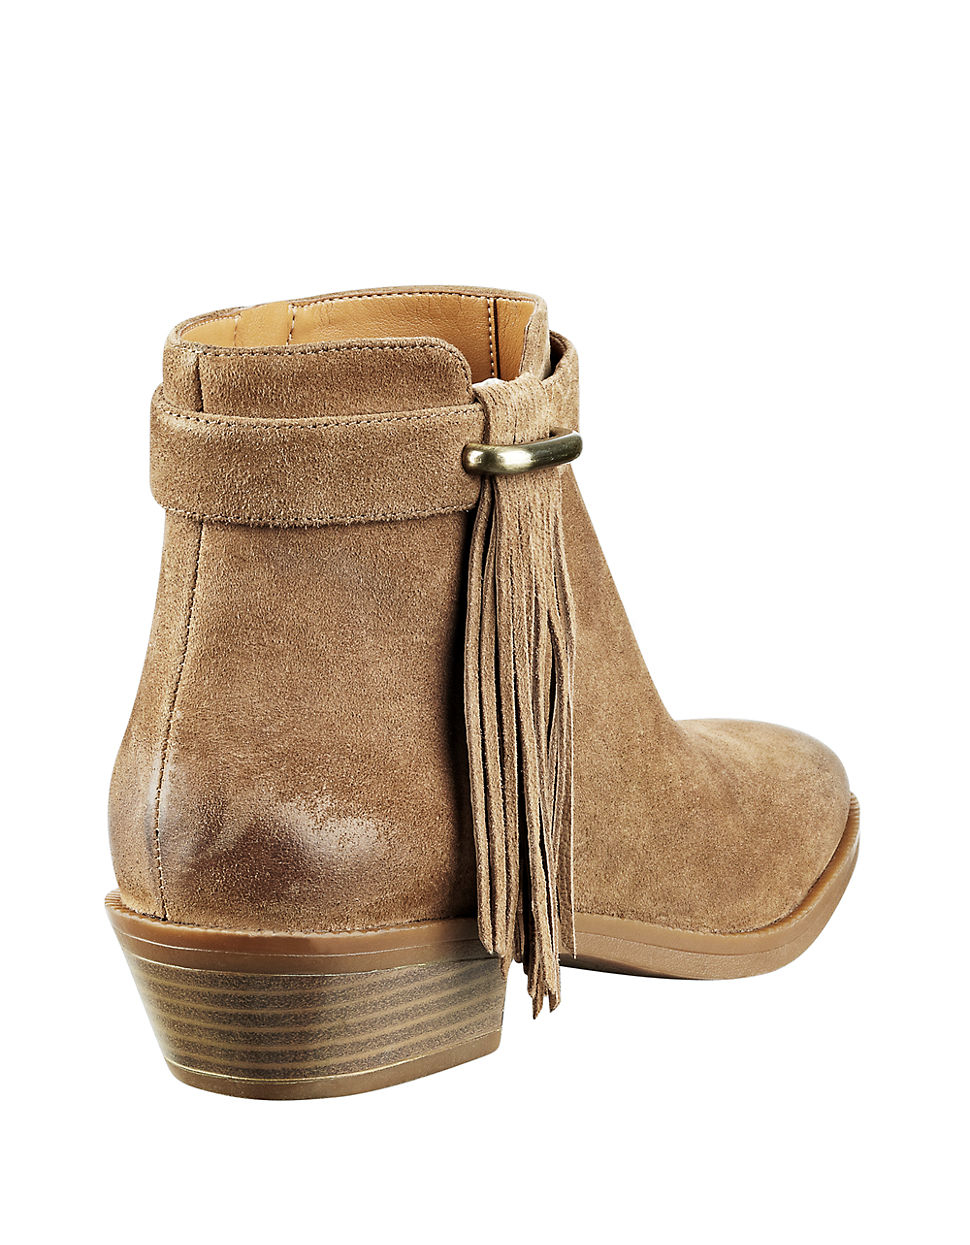 Newest Fashion style Shoes for sale canada in cheapest price Sandals - Women's Franco Sarto Lexie Khaki - Canada Online Shop.